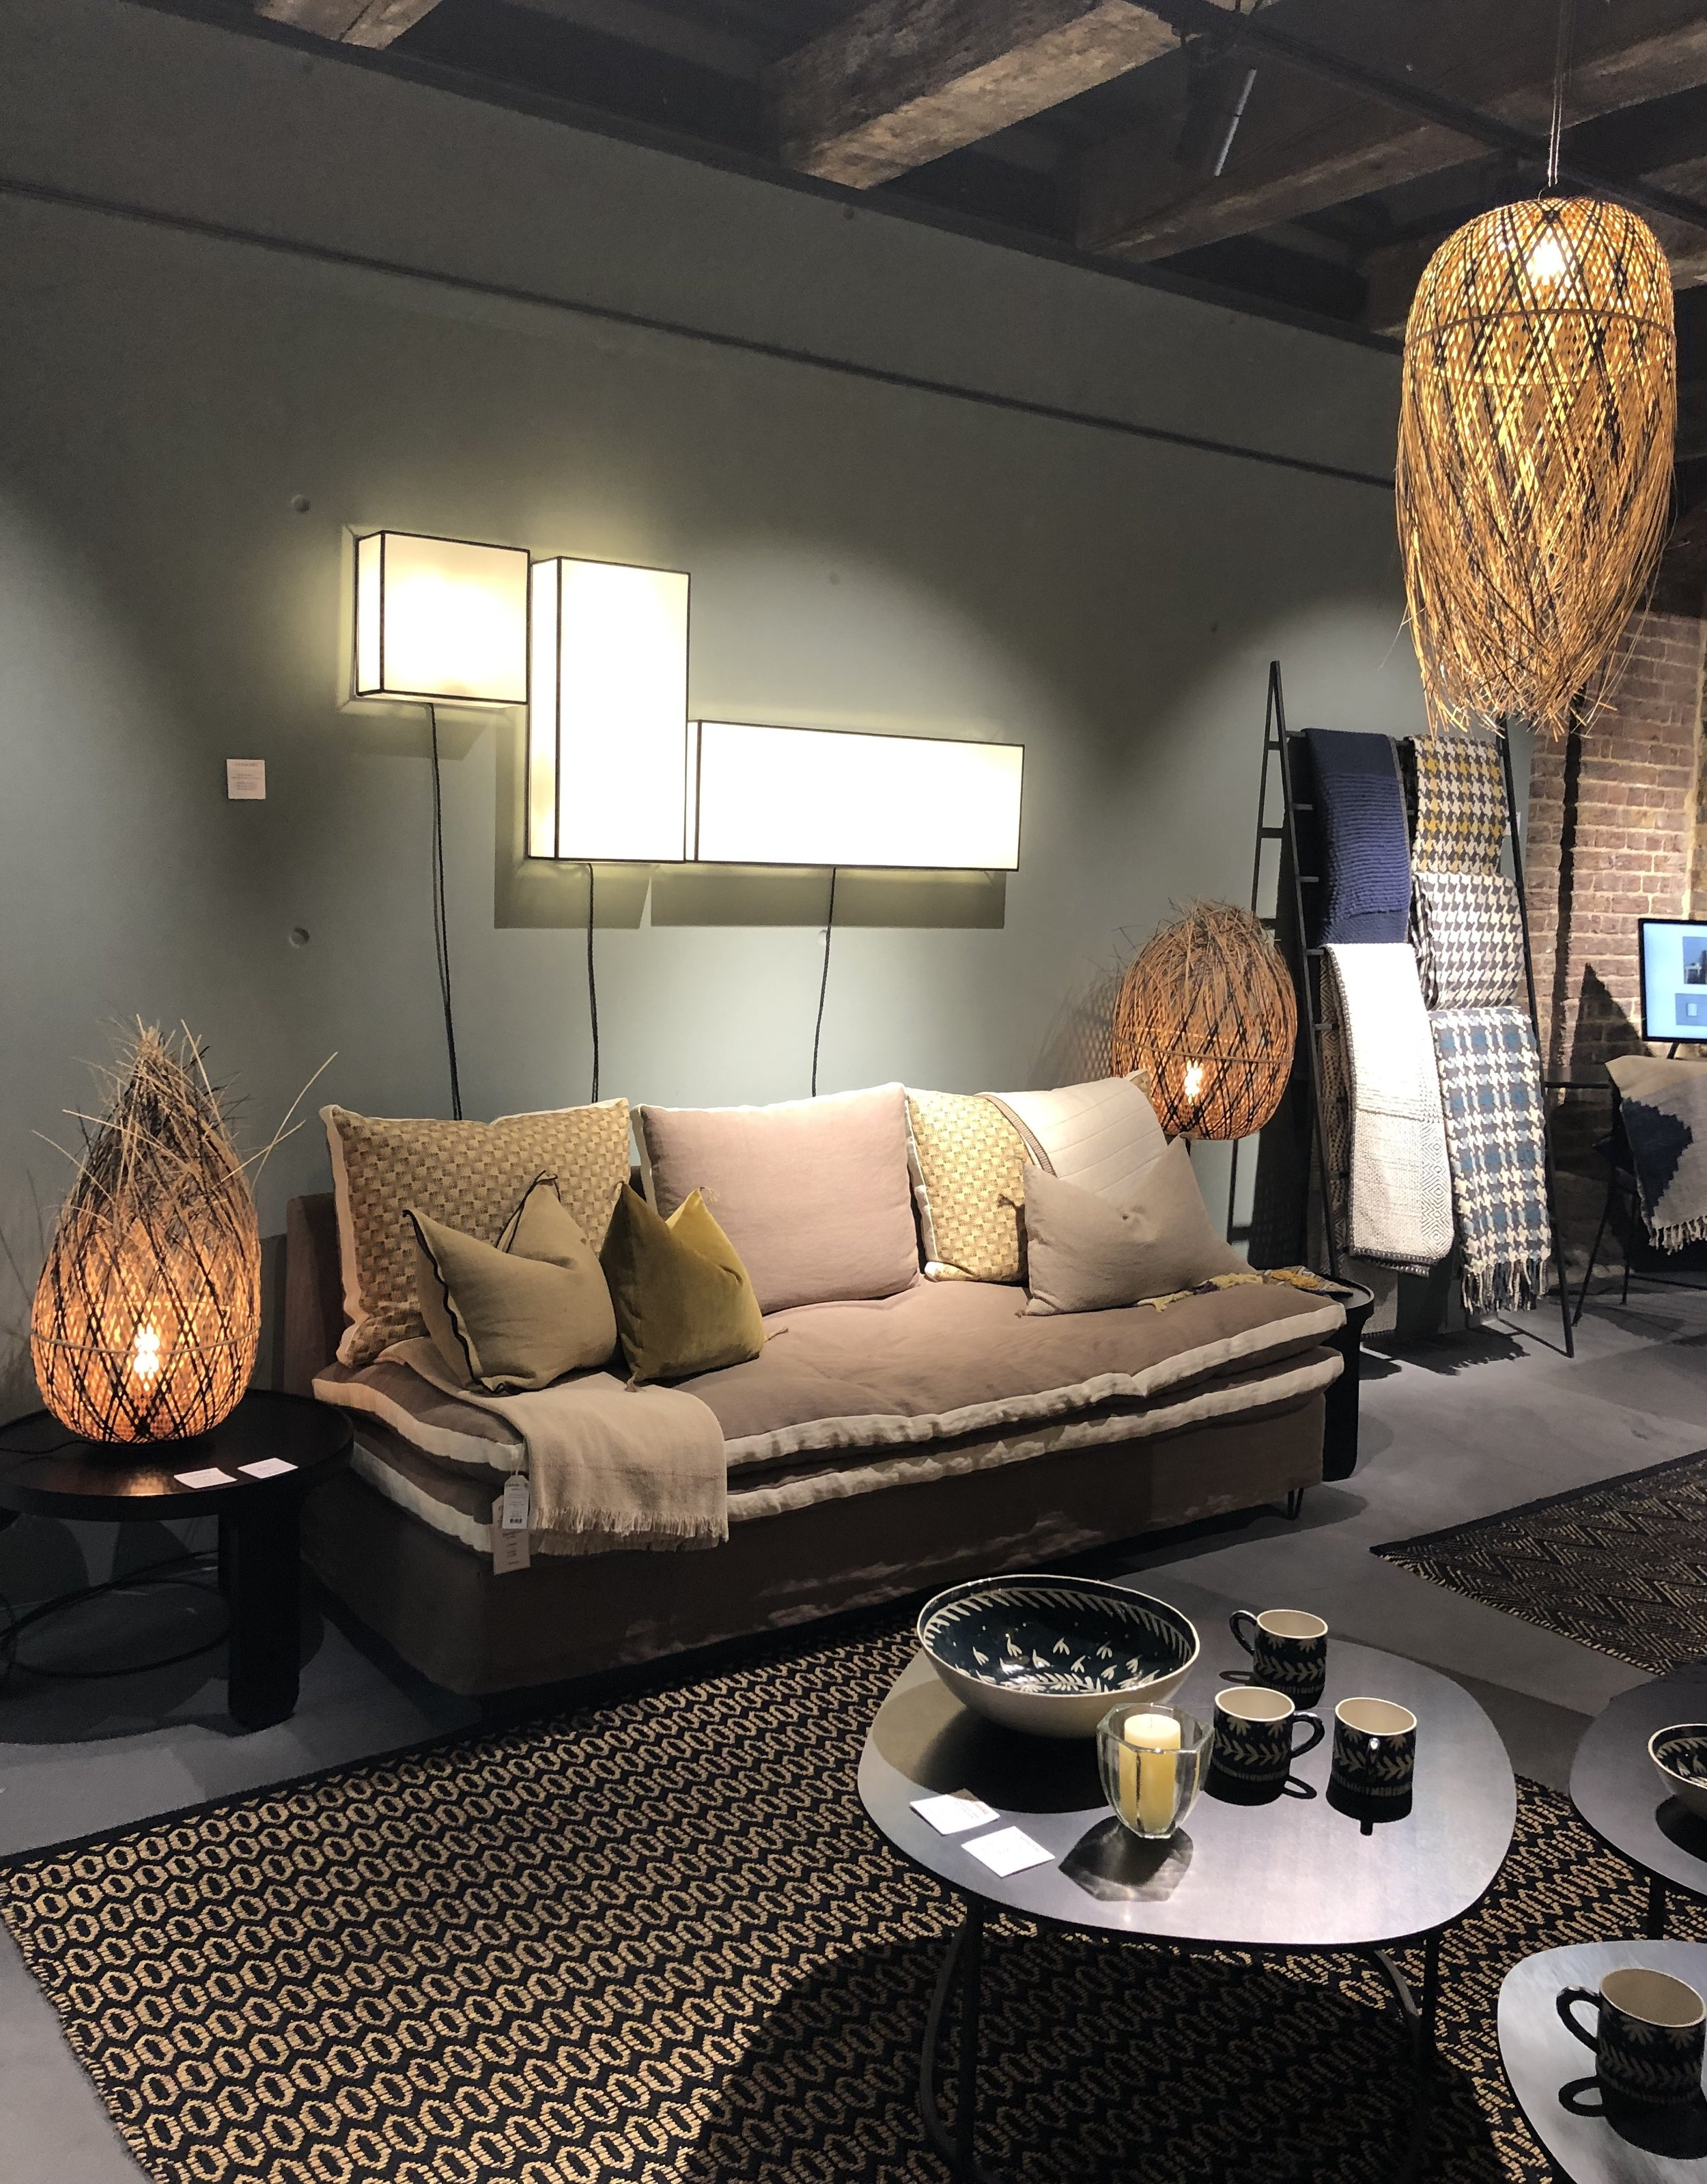 Beautiful furnishings in a rich variety of colors, patterns and textures from French interiors   Caravane caravane.fr